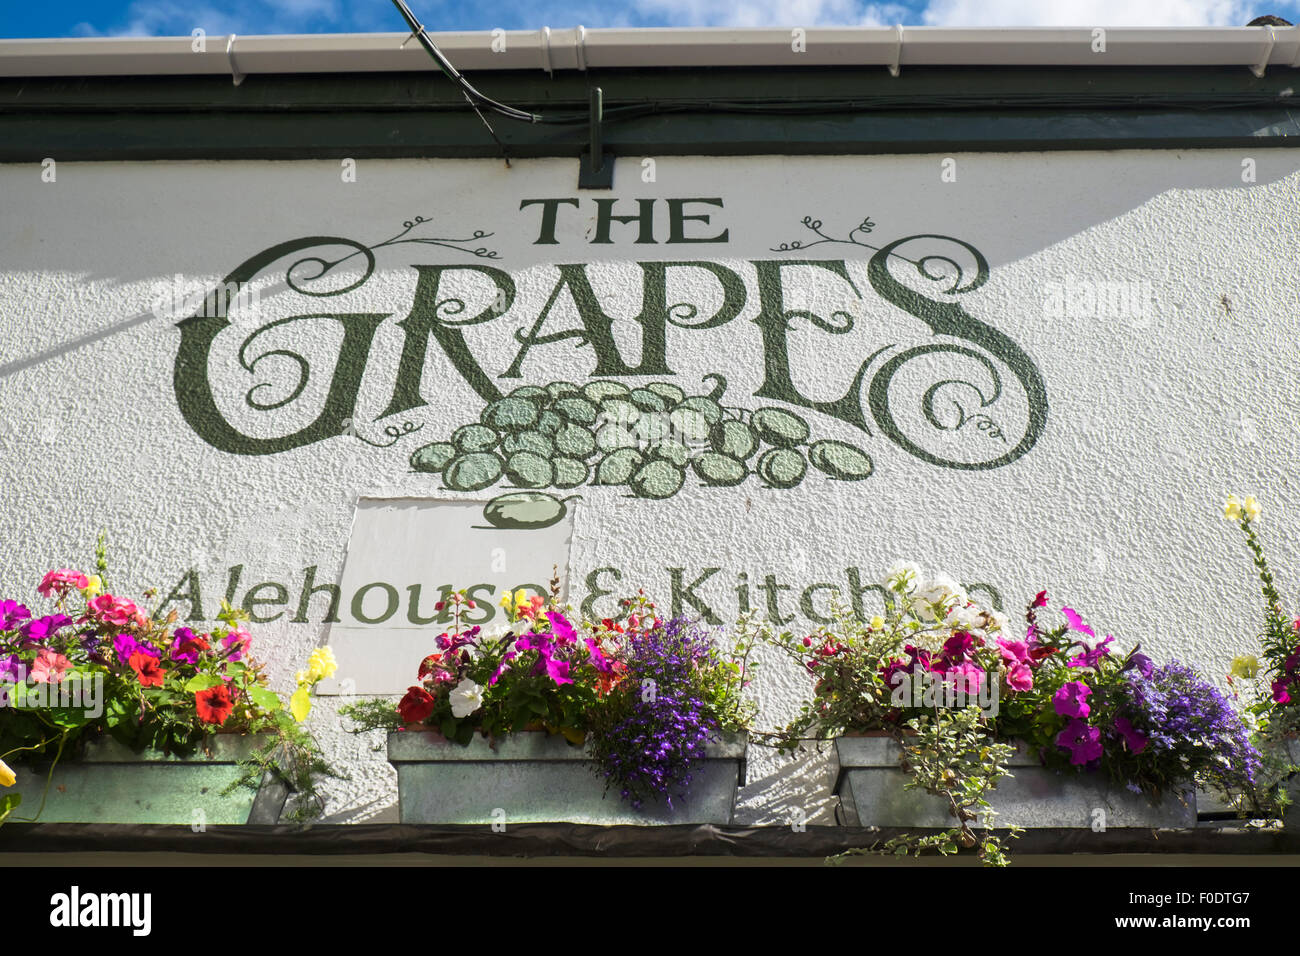 Falmouth a town and Port in Cornwall England UK The Grapes Pub - Stock Image